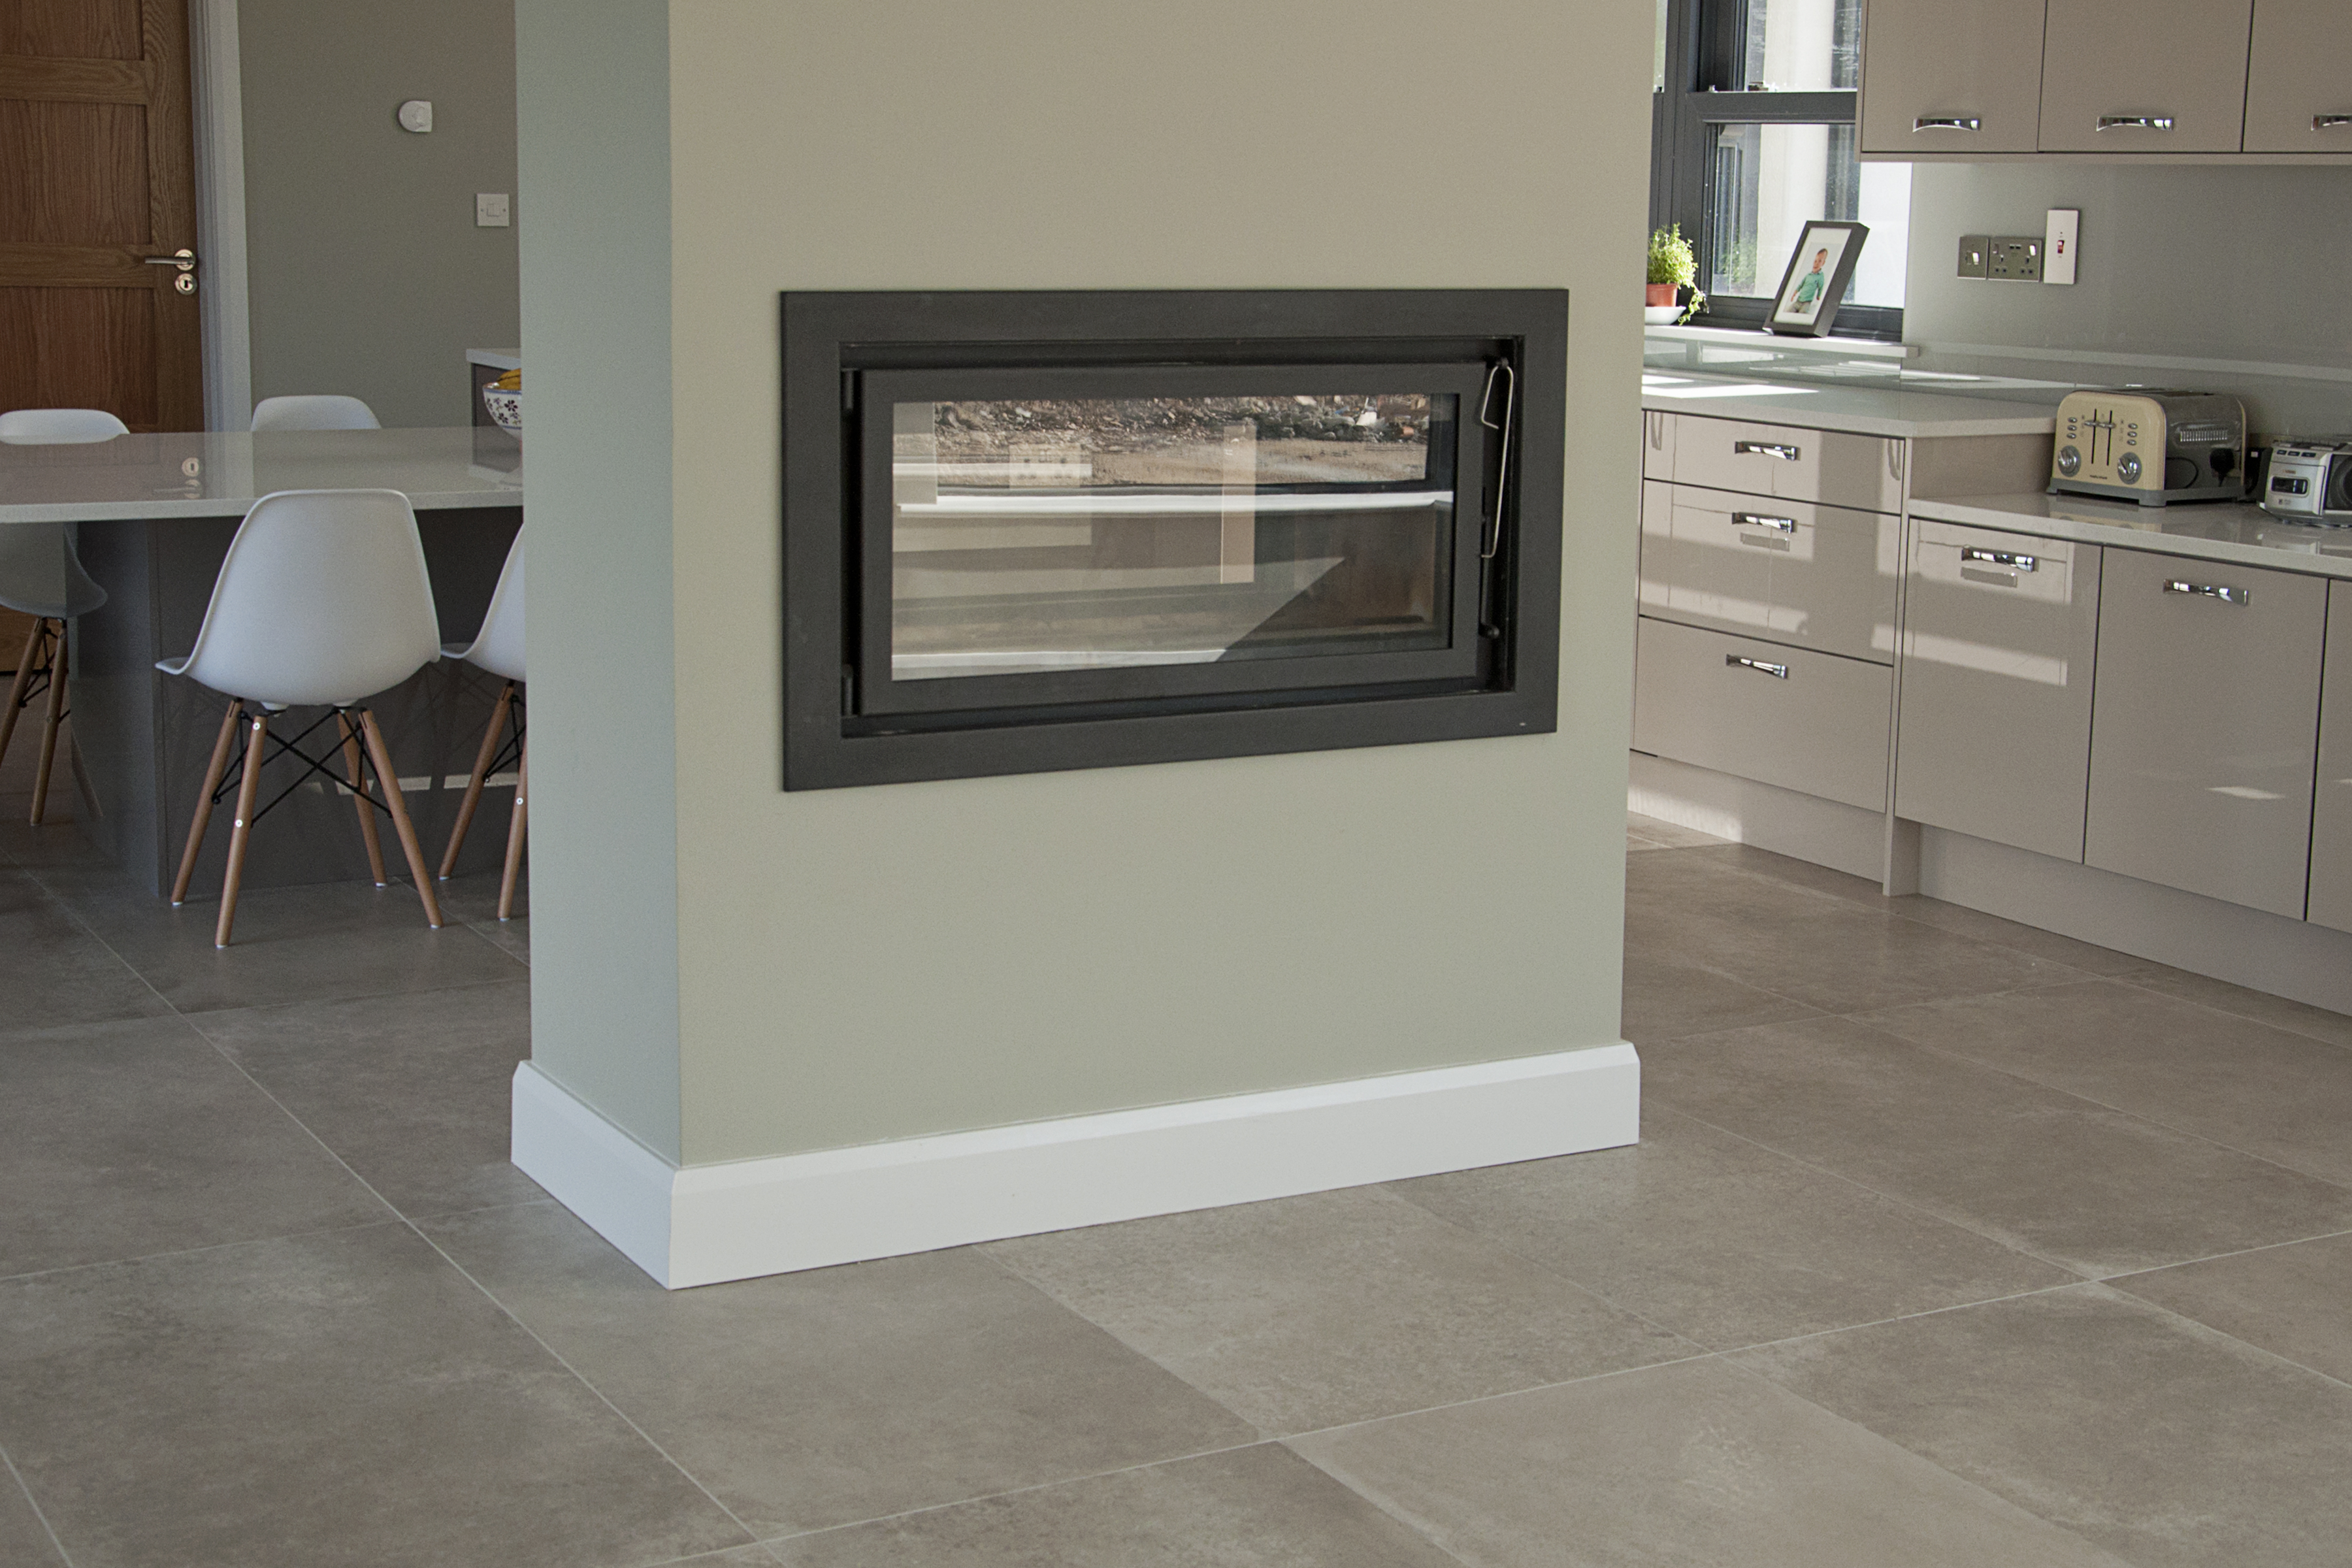 fireplace us portfolio porcelain effect they to dolphin stunning this where tile out from pk range item antique hallway leads our chose project kitchen moon a beautiful tiles their timber